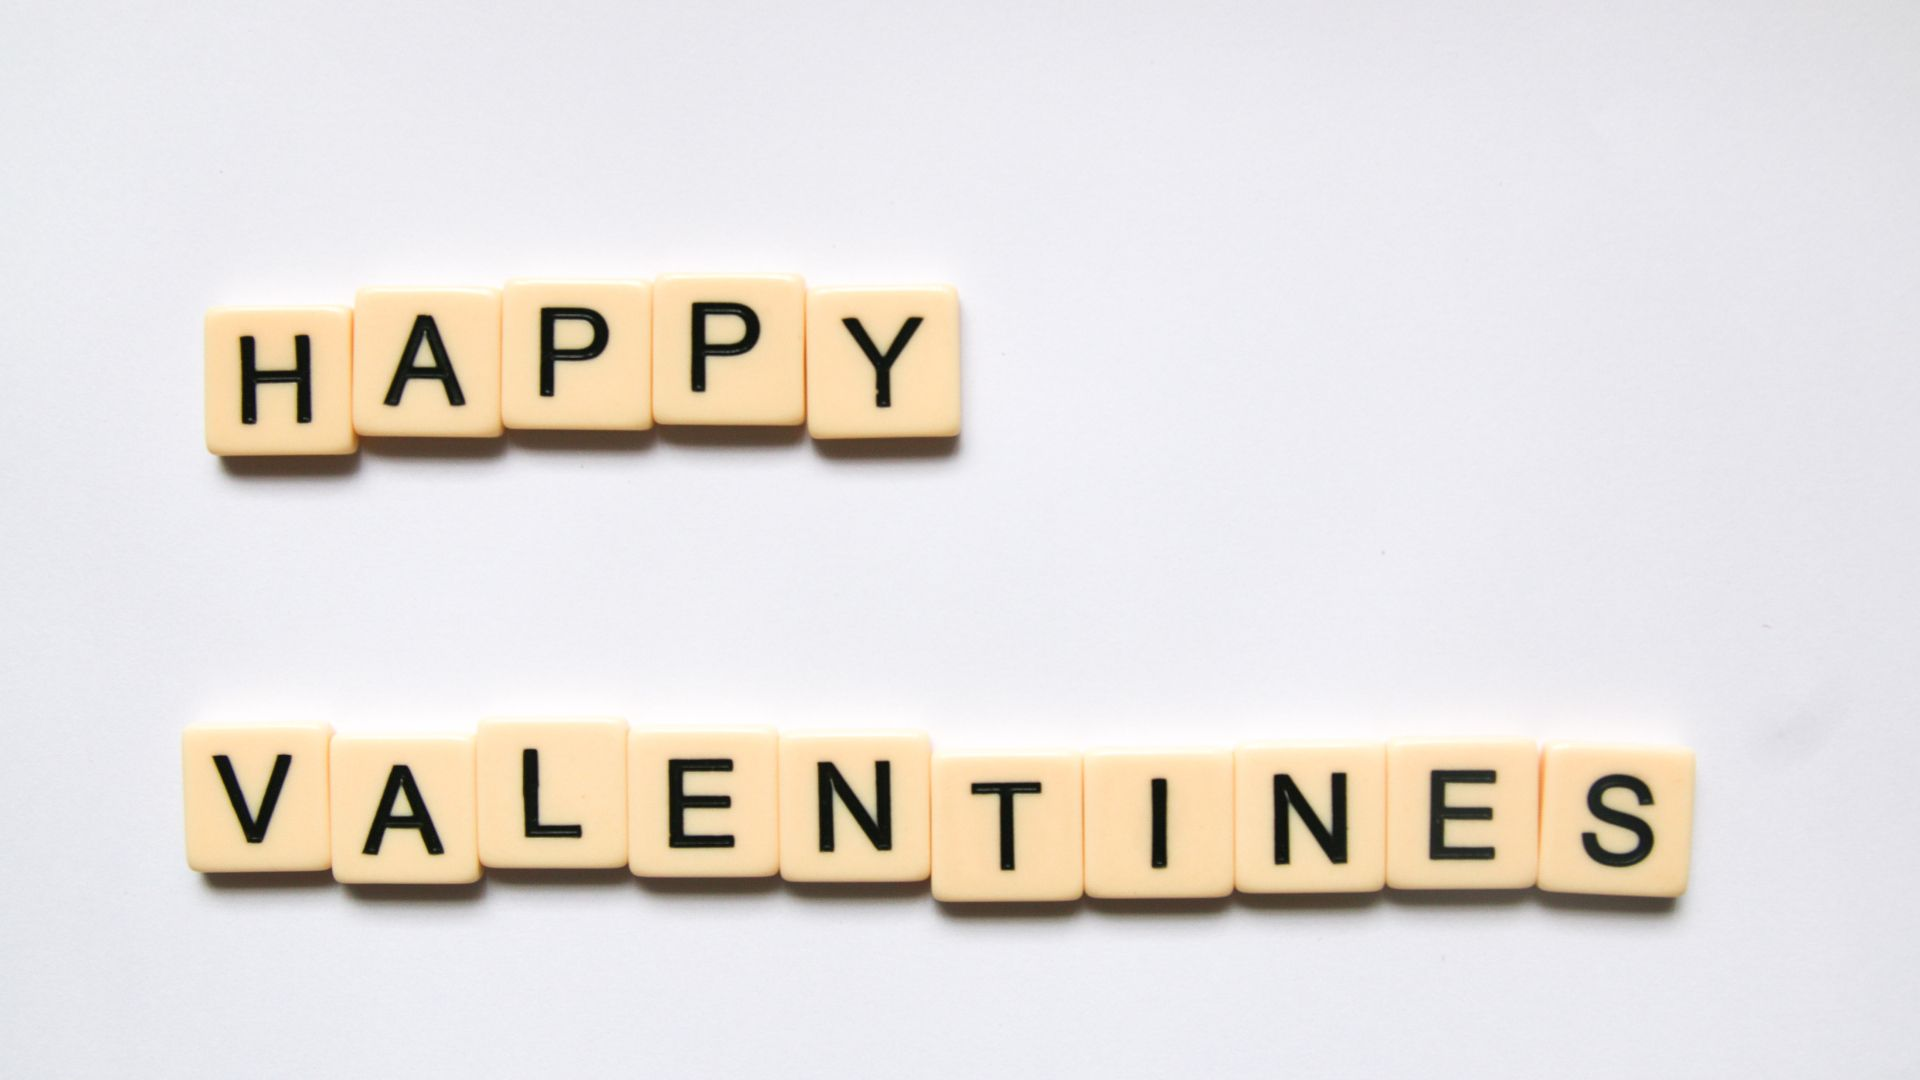 scrabble letters spelling out happy valentines